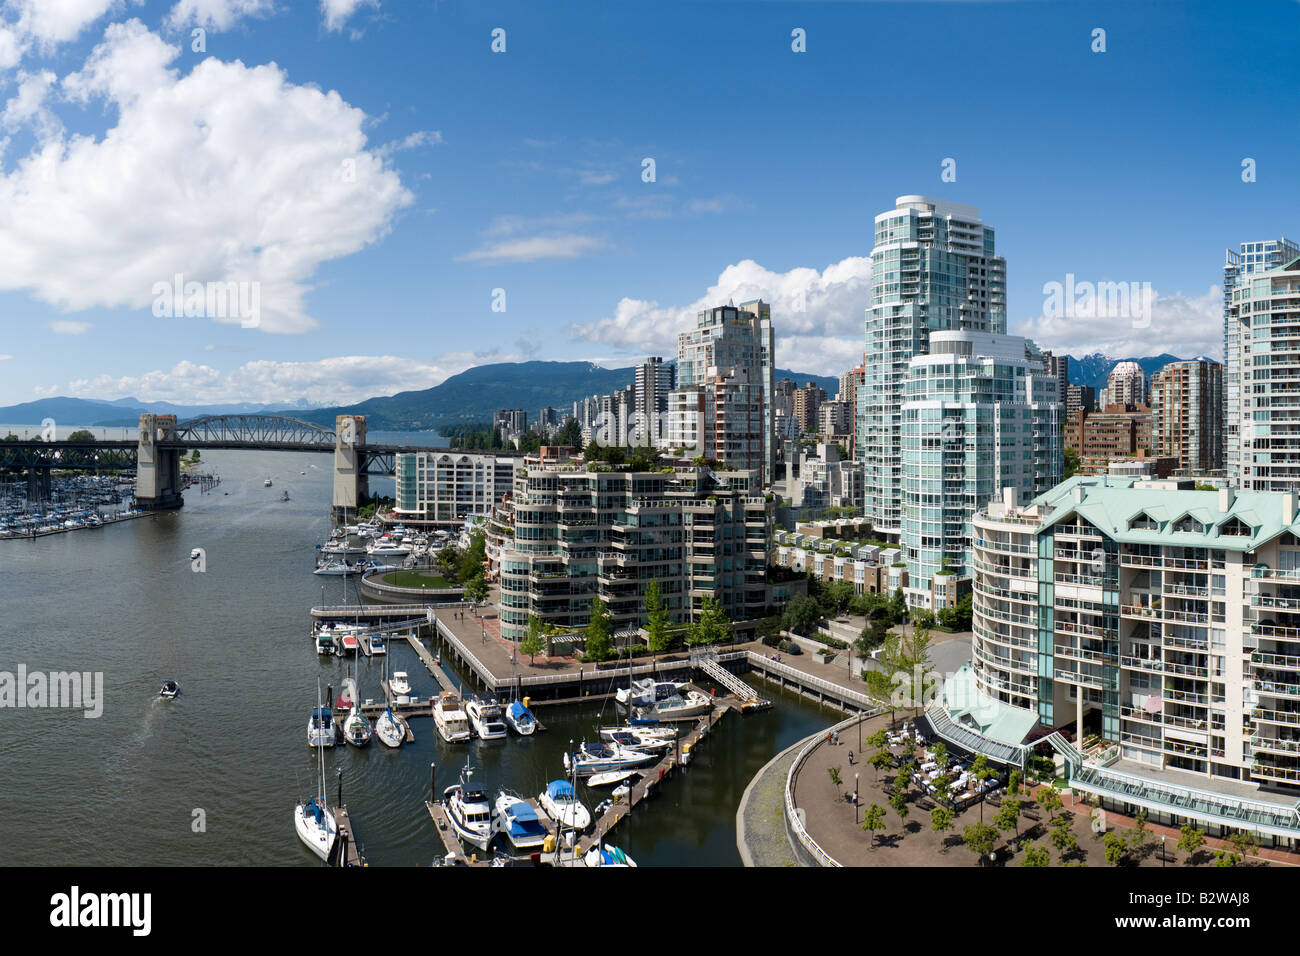 The north side of False Creek and Burrard Bridge as seen from Granville Bridge in Vancouver, BC, Canada. - Stock Image